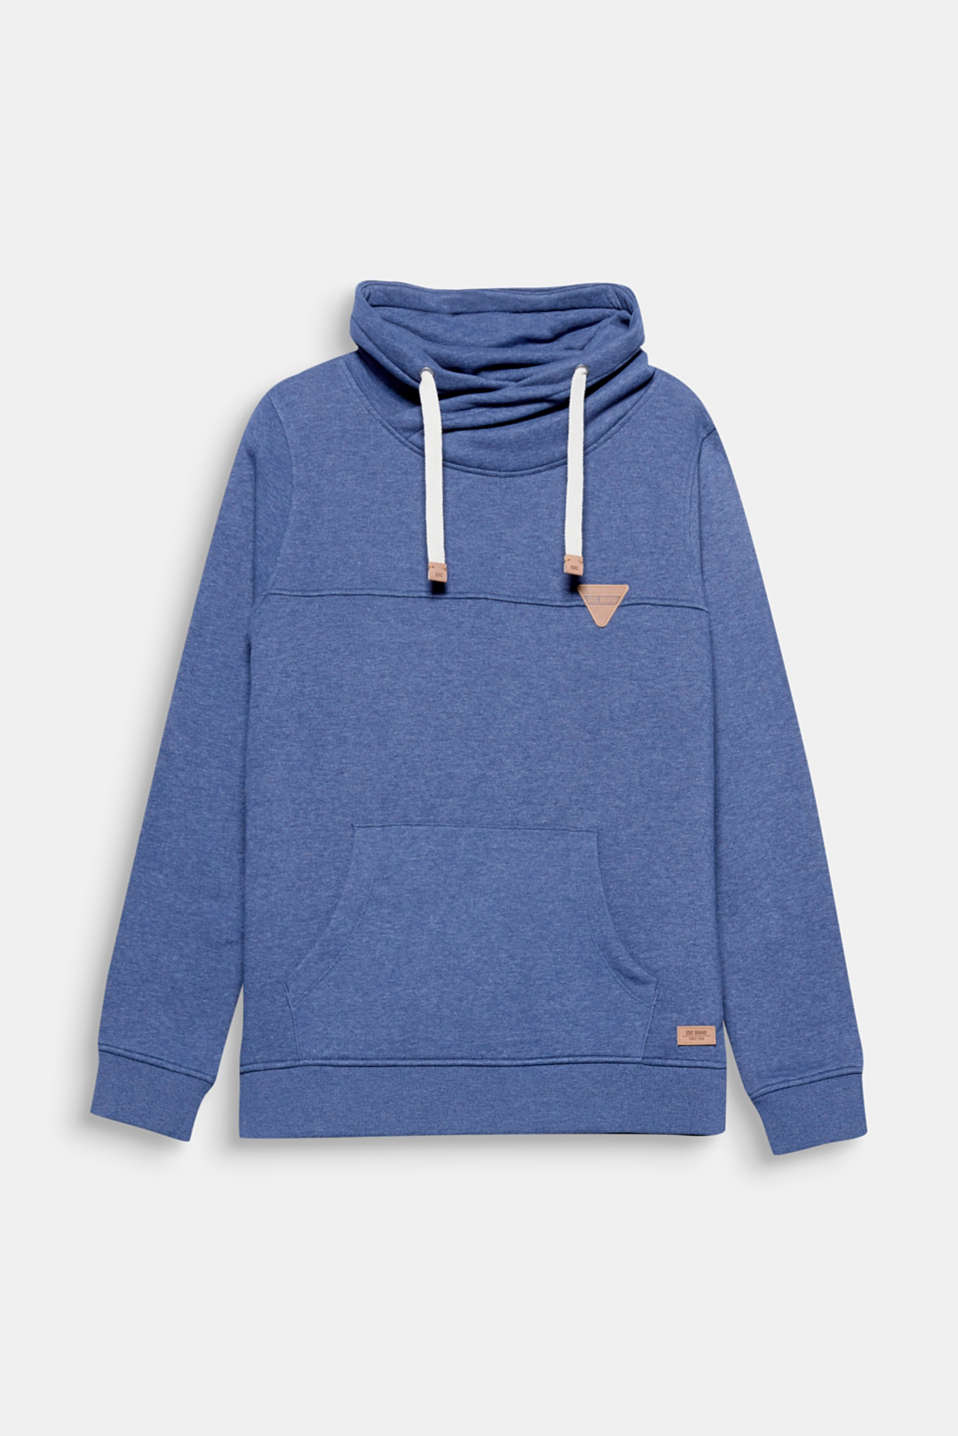 An EDC classic: jumper with a drawstring, in melange blended cotton